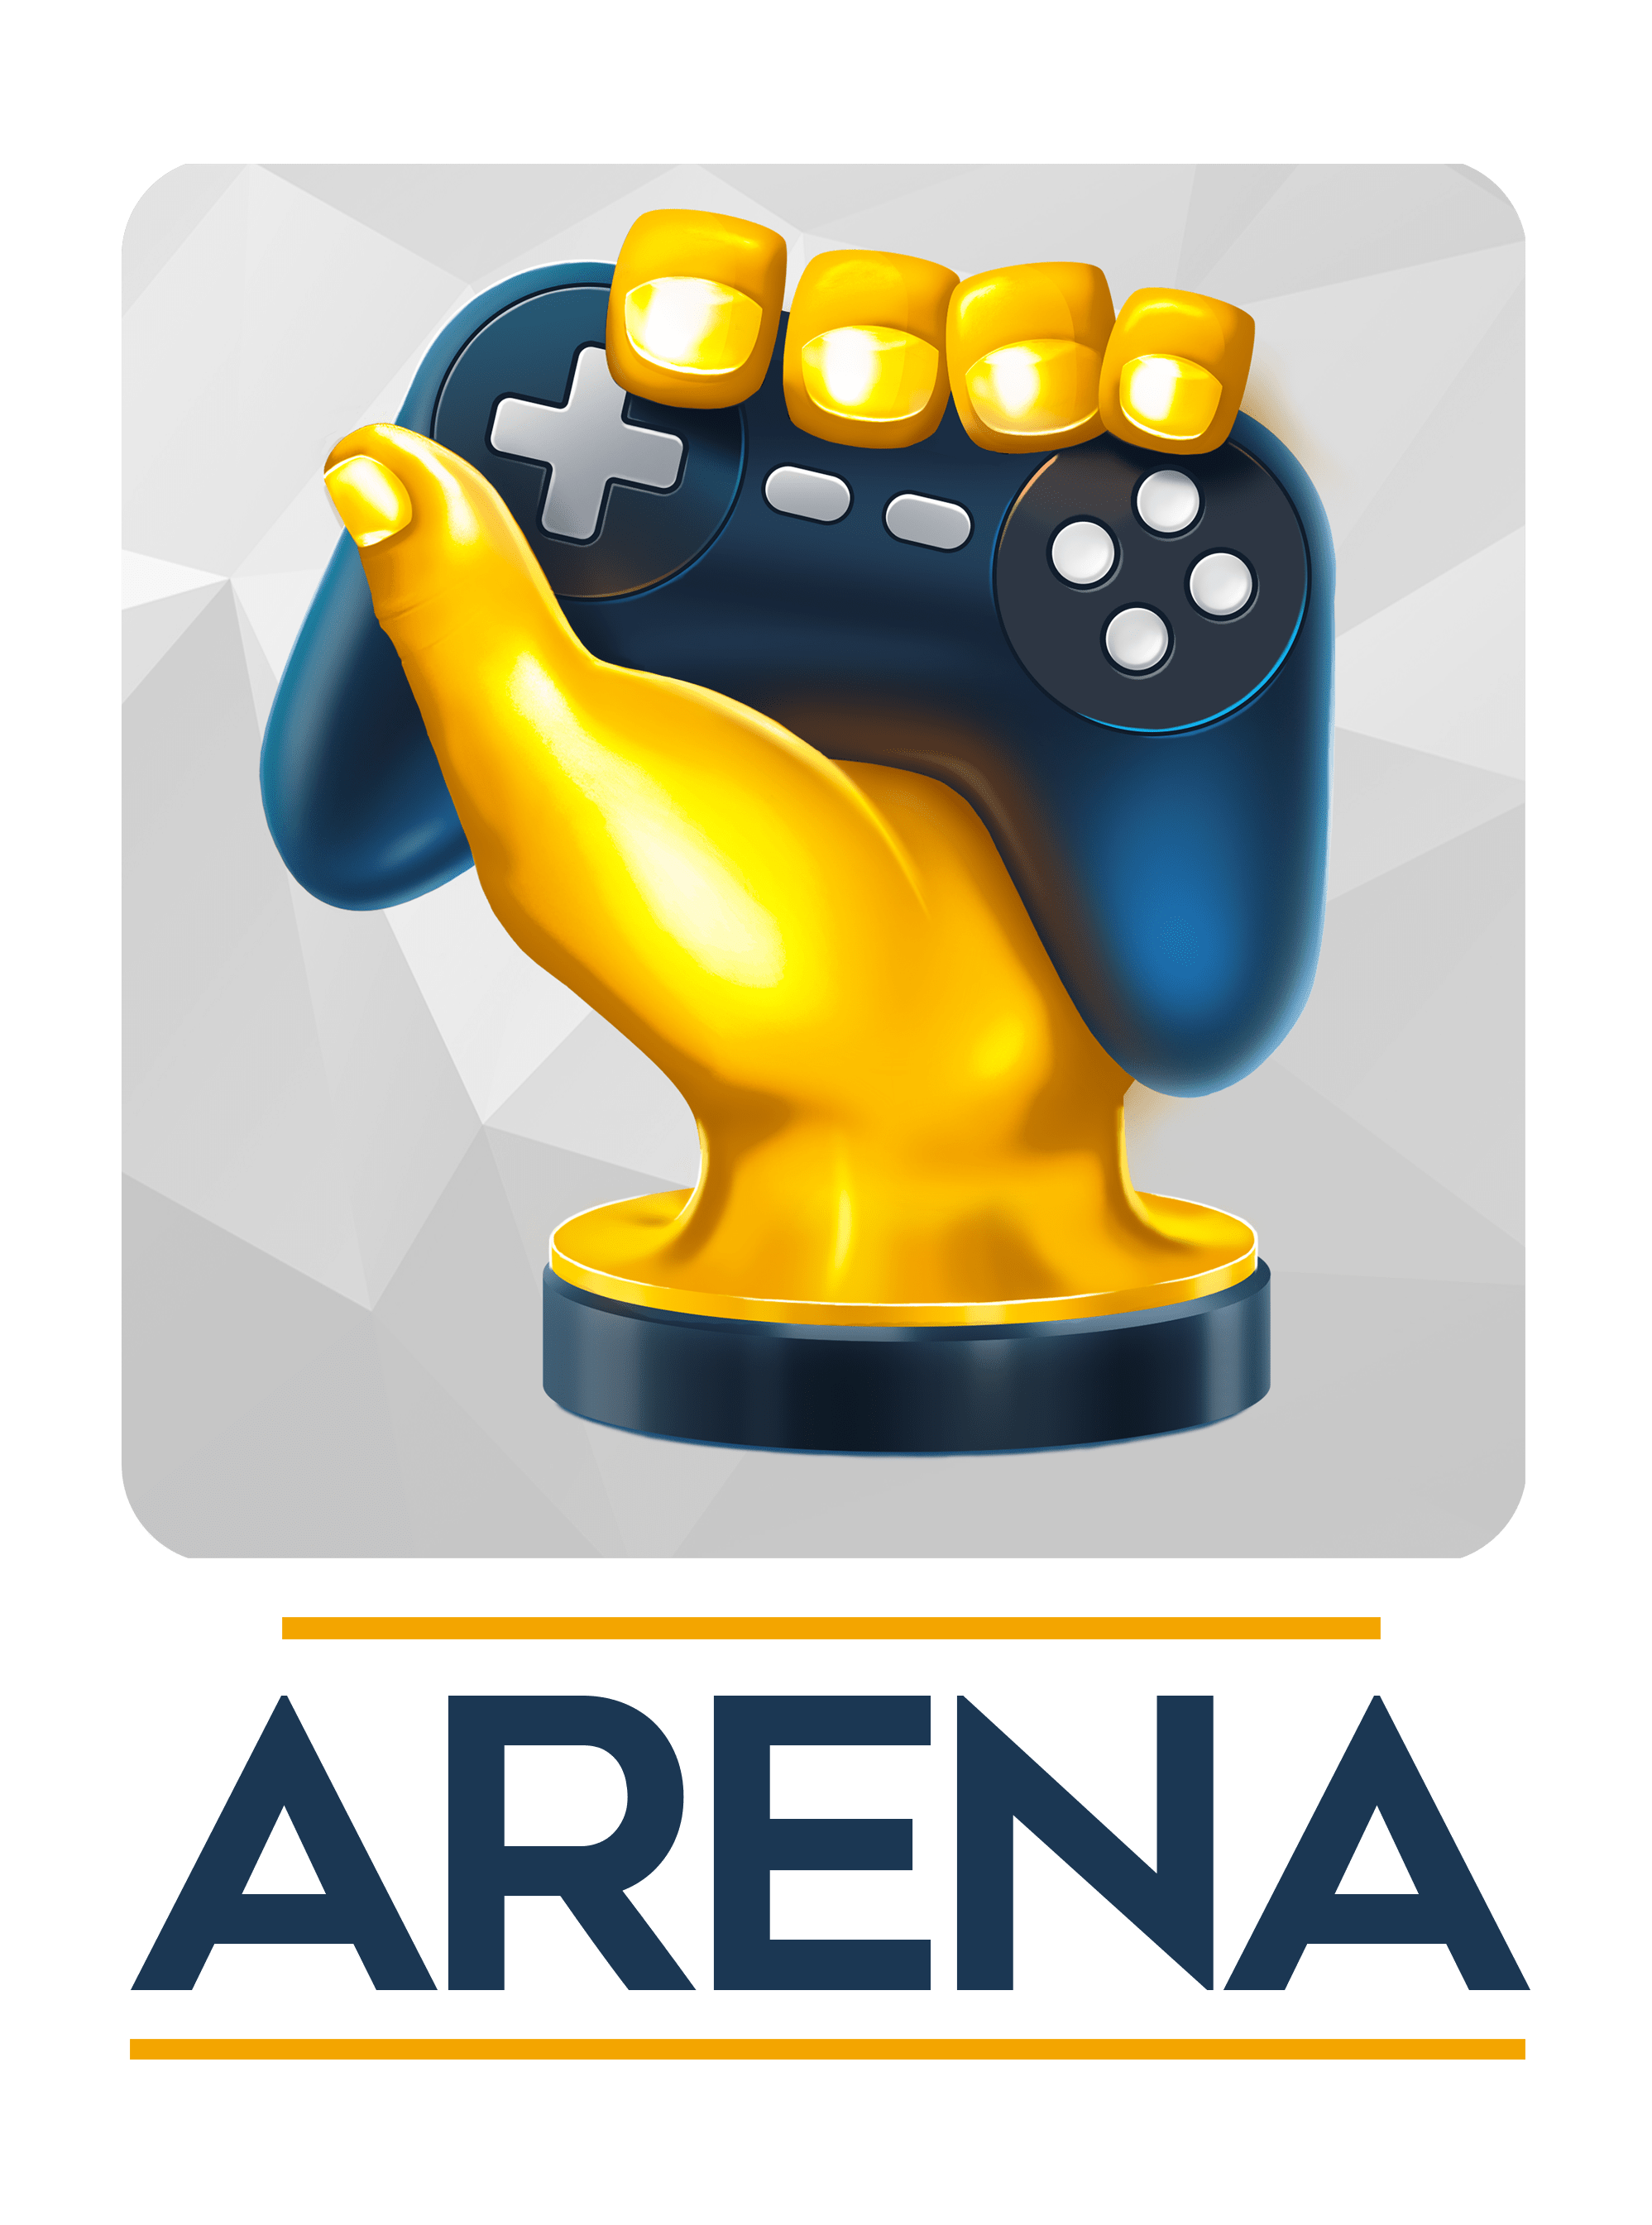 Arena application play games. Gaming clipart mobile game